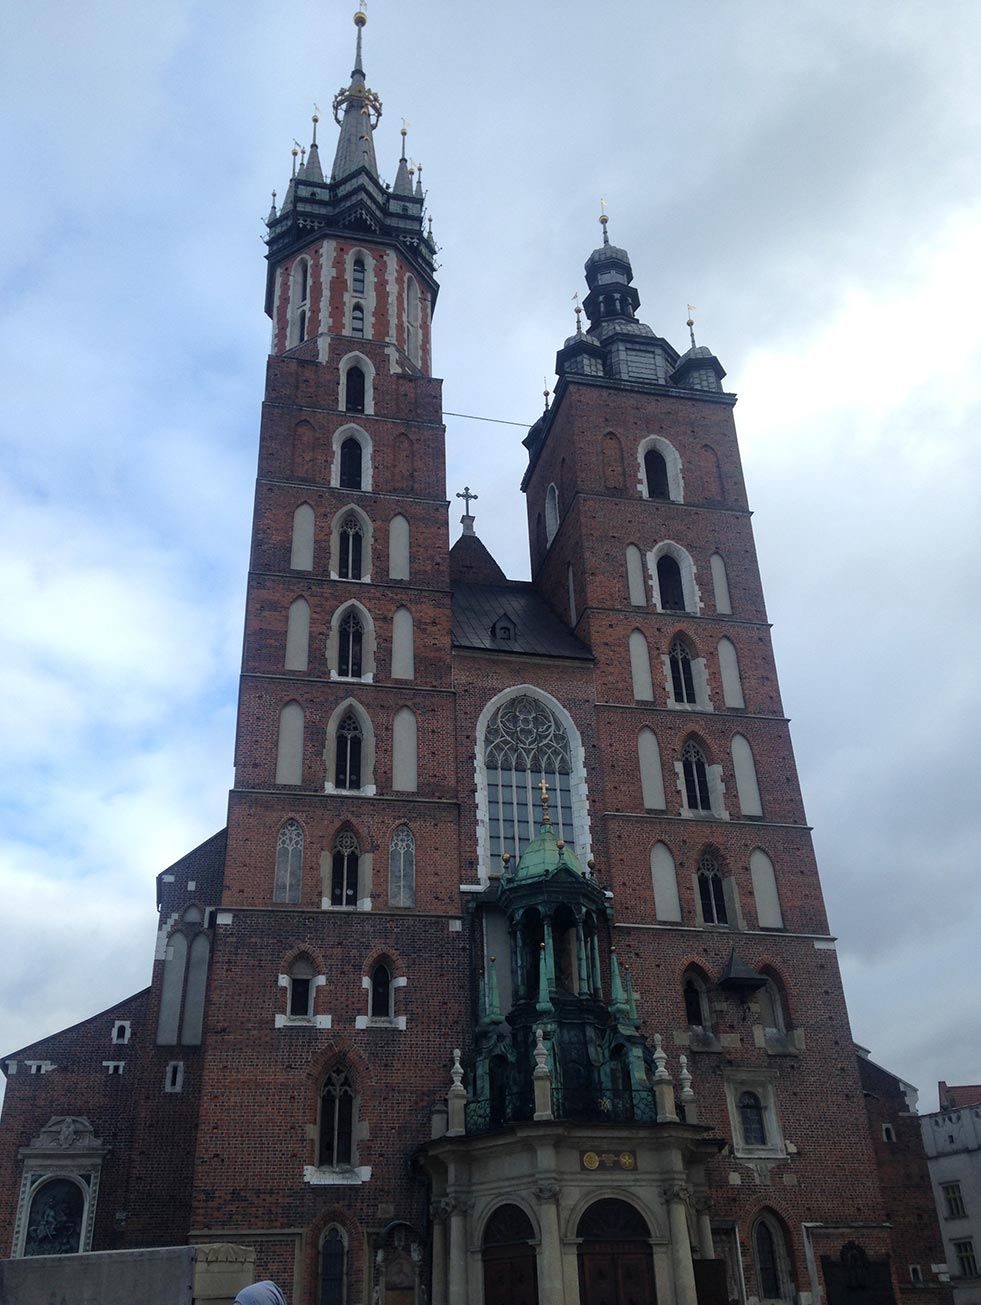 The towers of a brick church in Krakow, Poland.